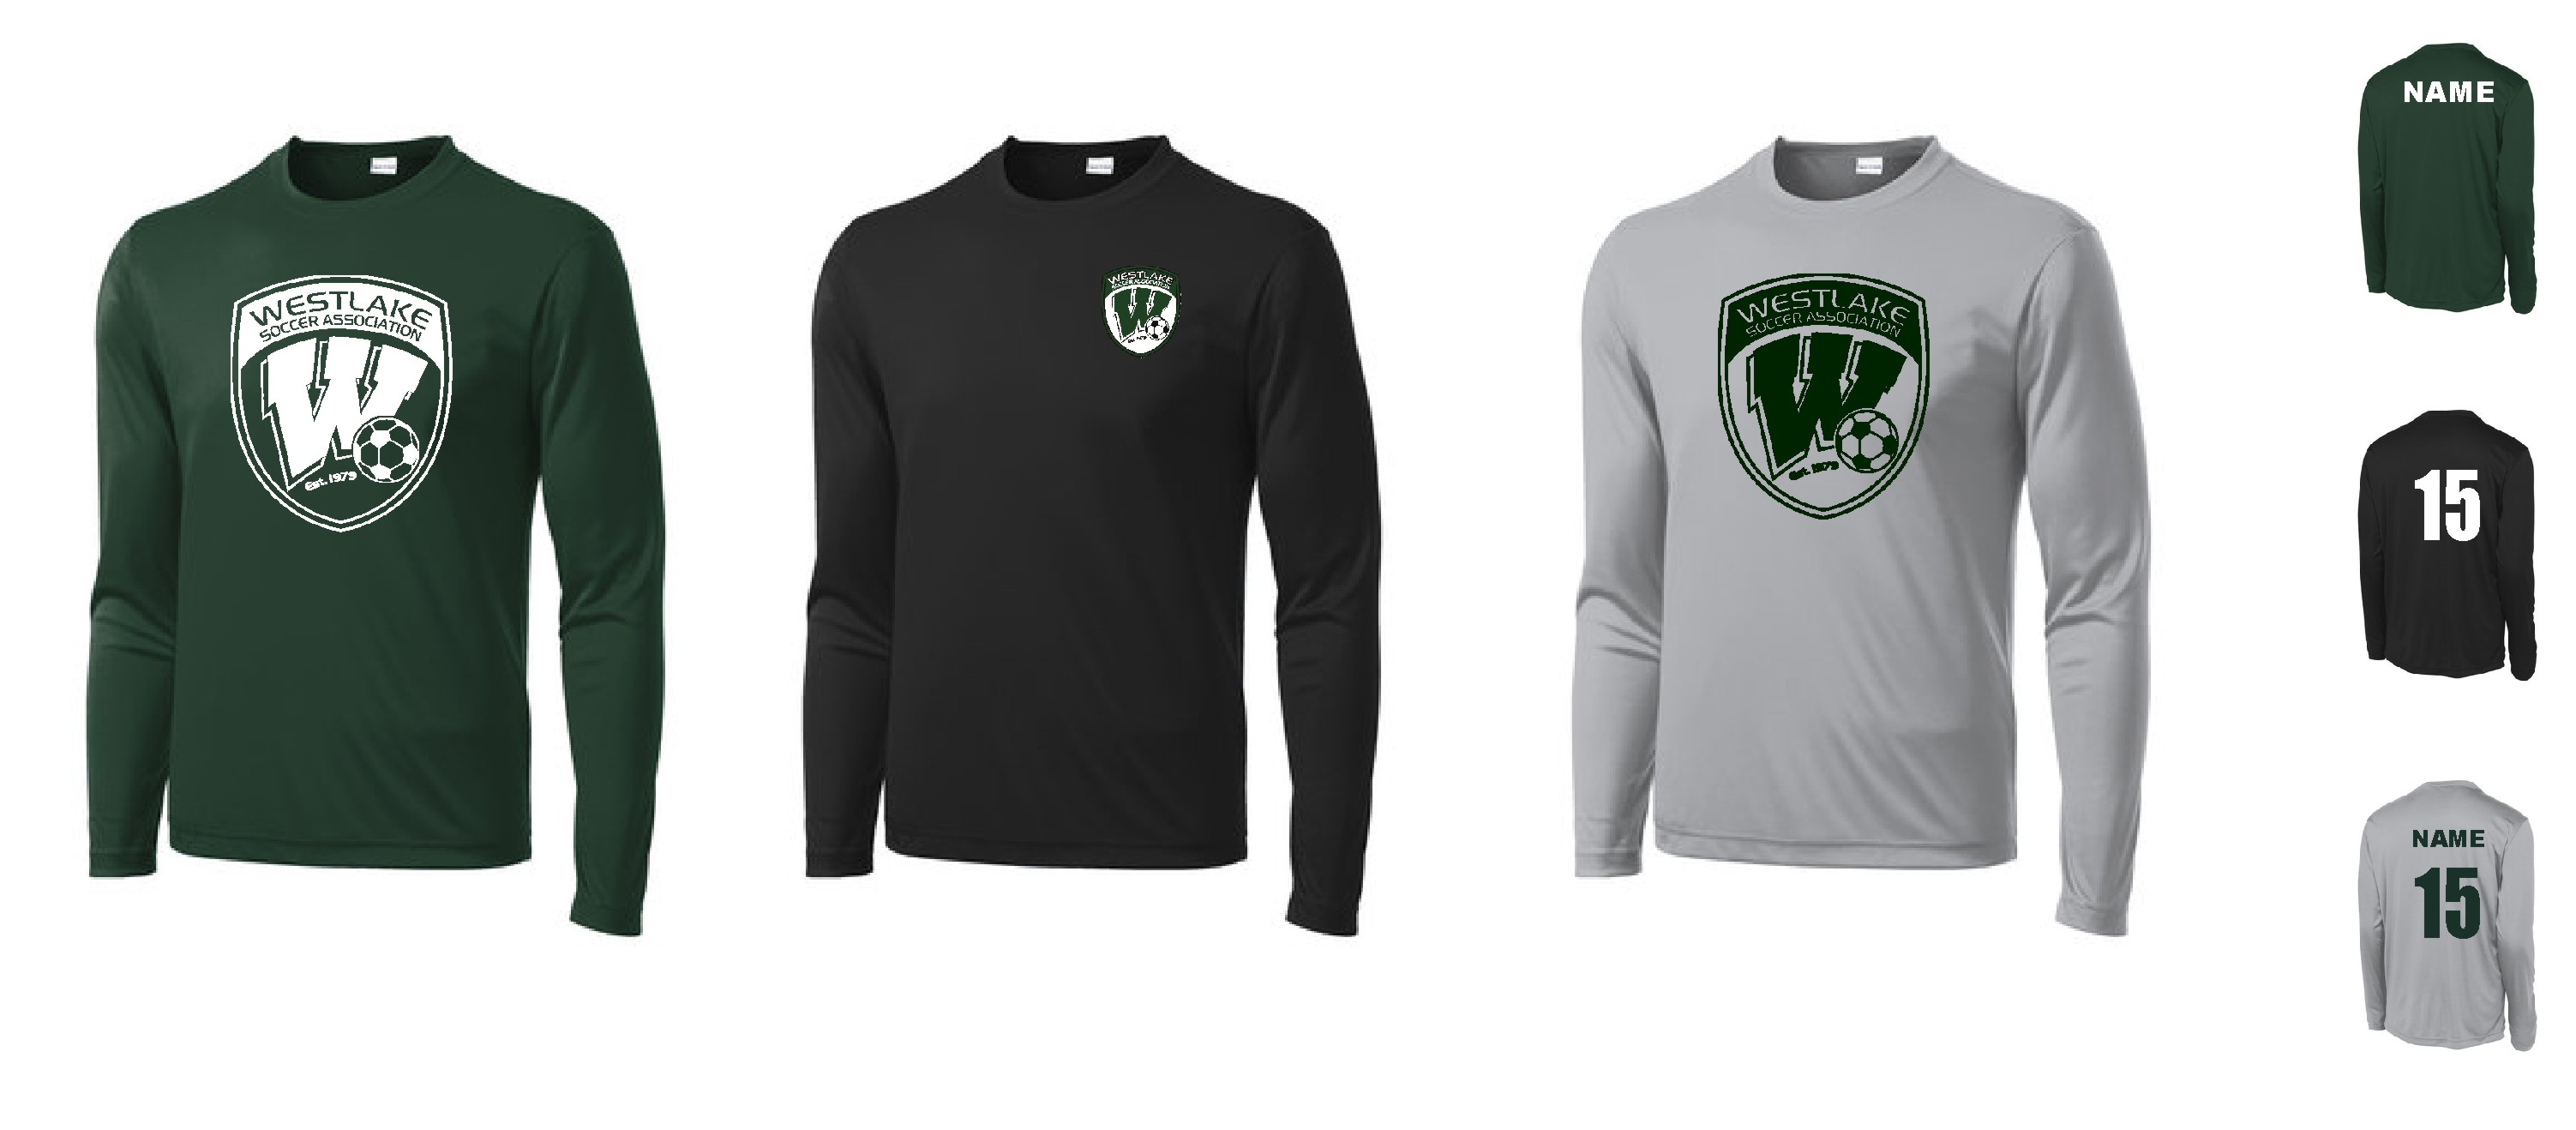 Westlake Sport Tek Long Sleeve Posicharge Competitor Top Font pictured on garment is for color and placement only. westlake sport tek long sleeve posicharge competitor top